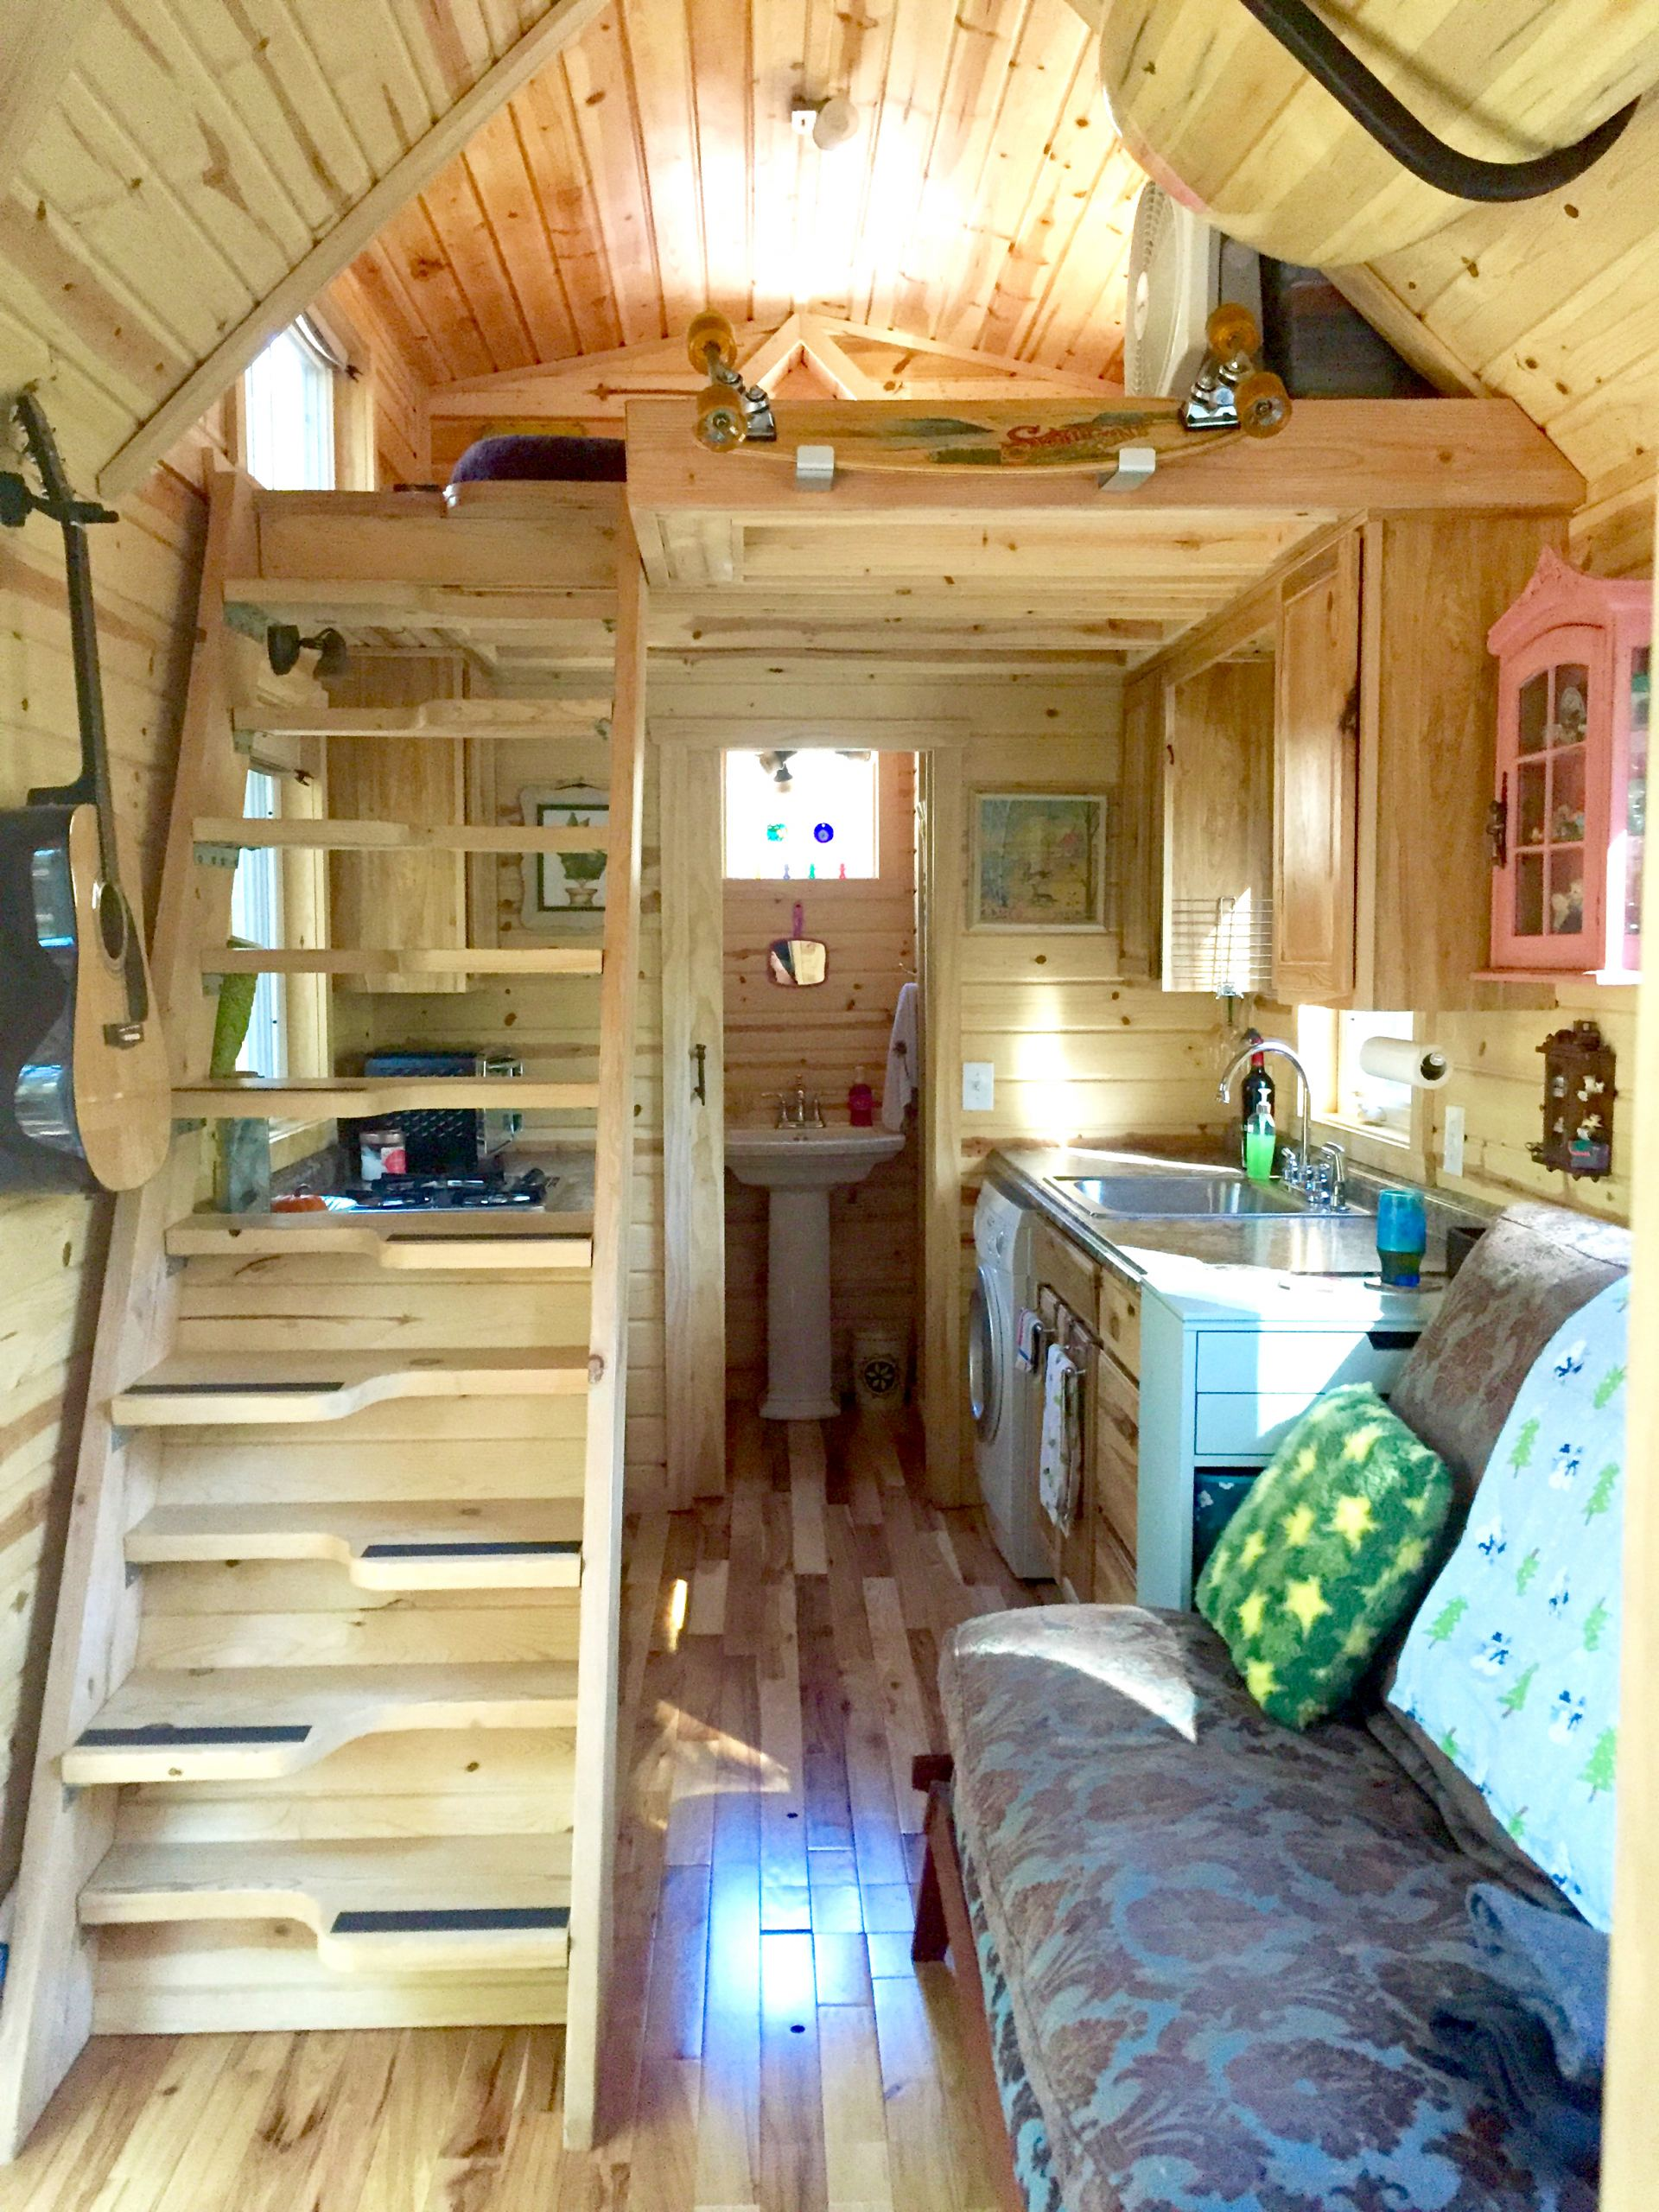 nicki 39 s colorful victorian tiny house after one year. Black Bedroom Furniture Sets. Home Design Ideas